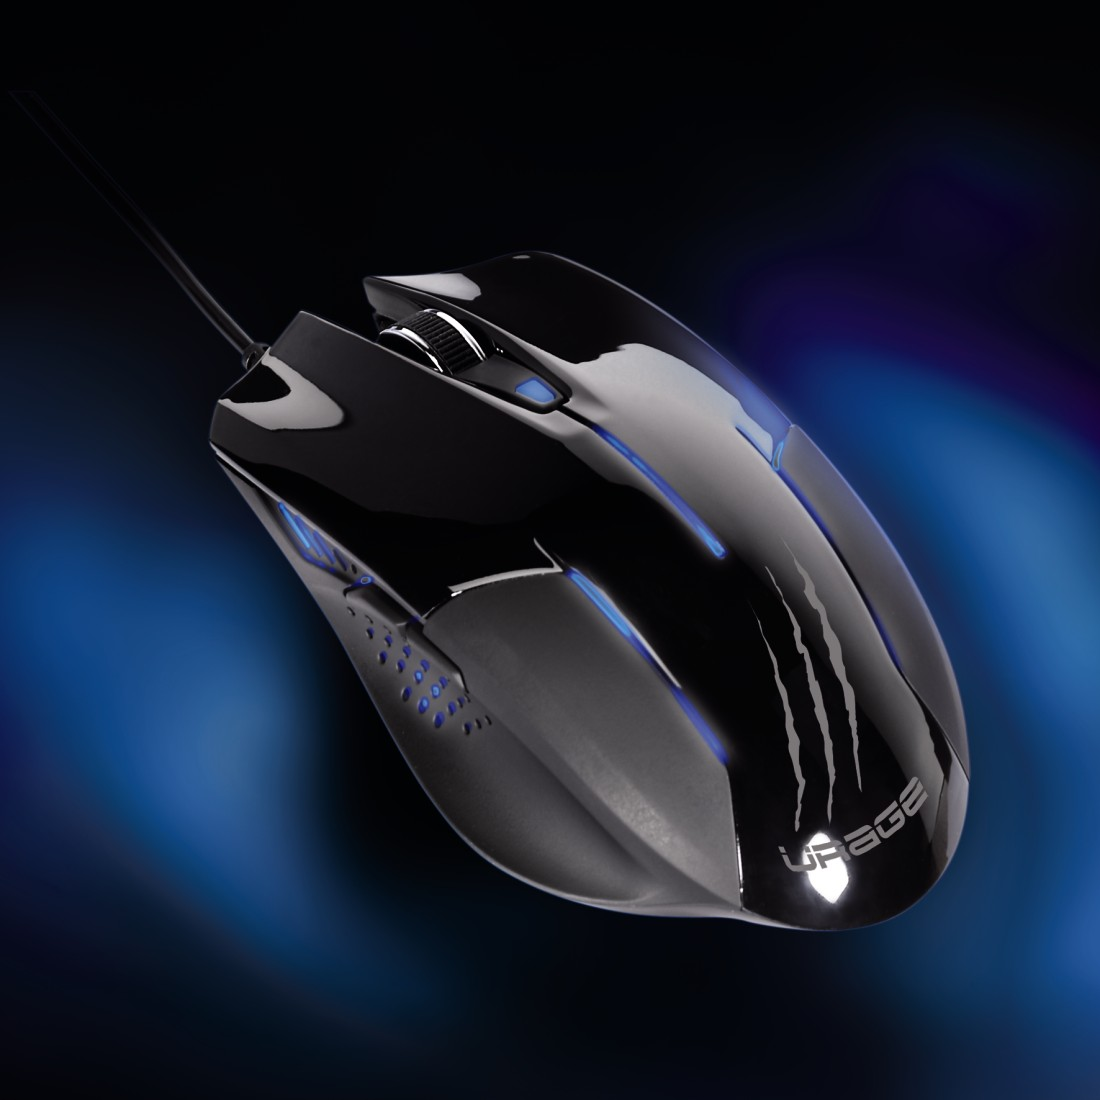 awx High-Res Appliance - Hama, uRage evo. Gaming Mouse